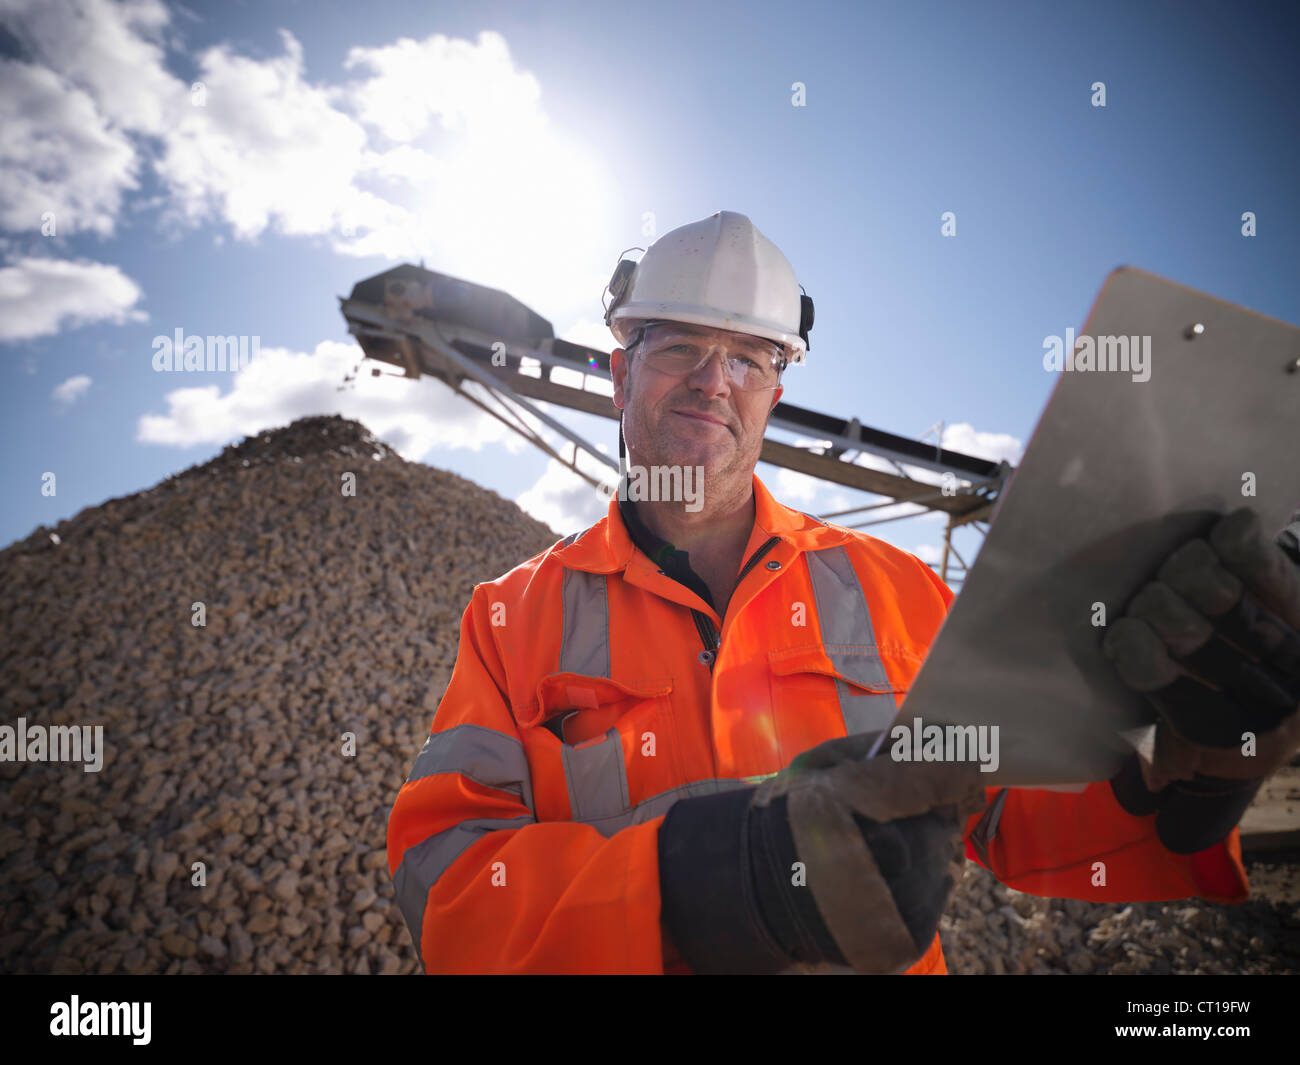 Worker standing by pile of stones - Stock Image